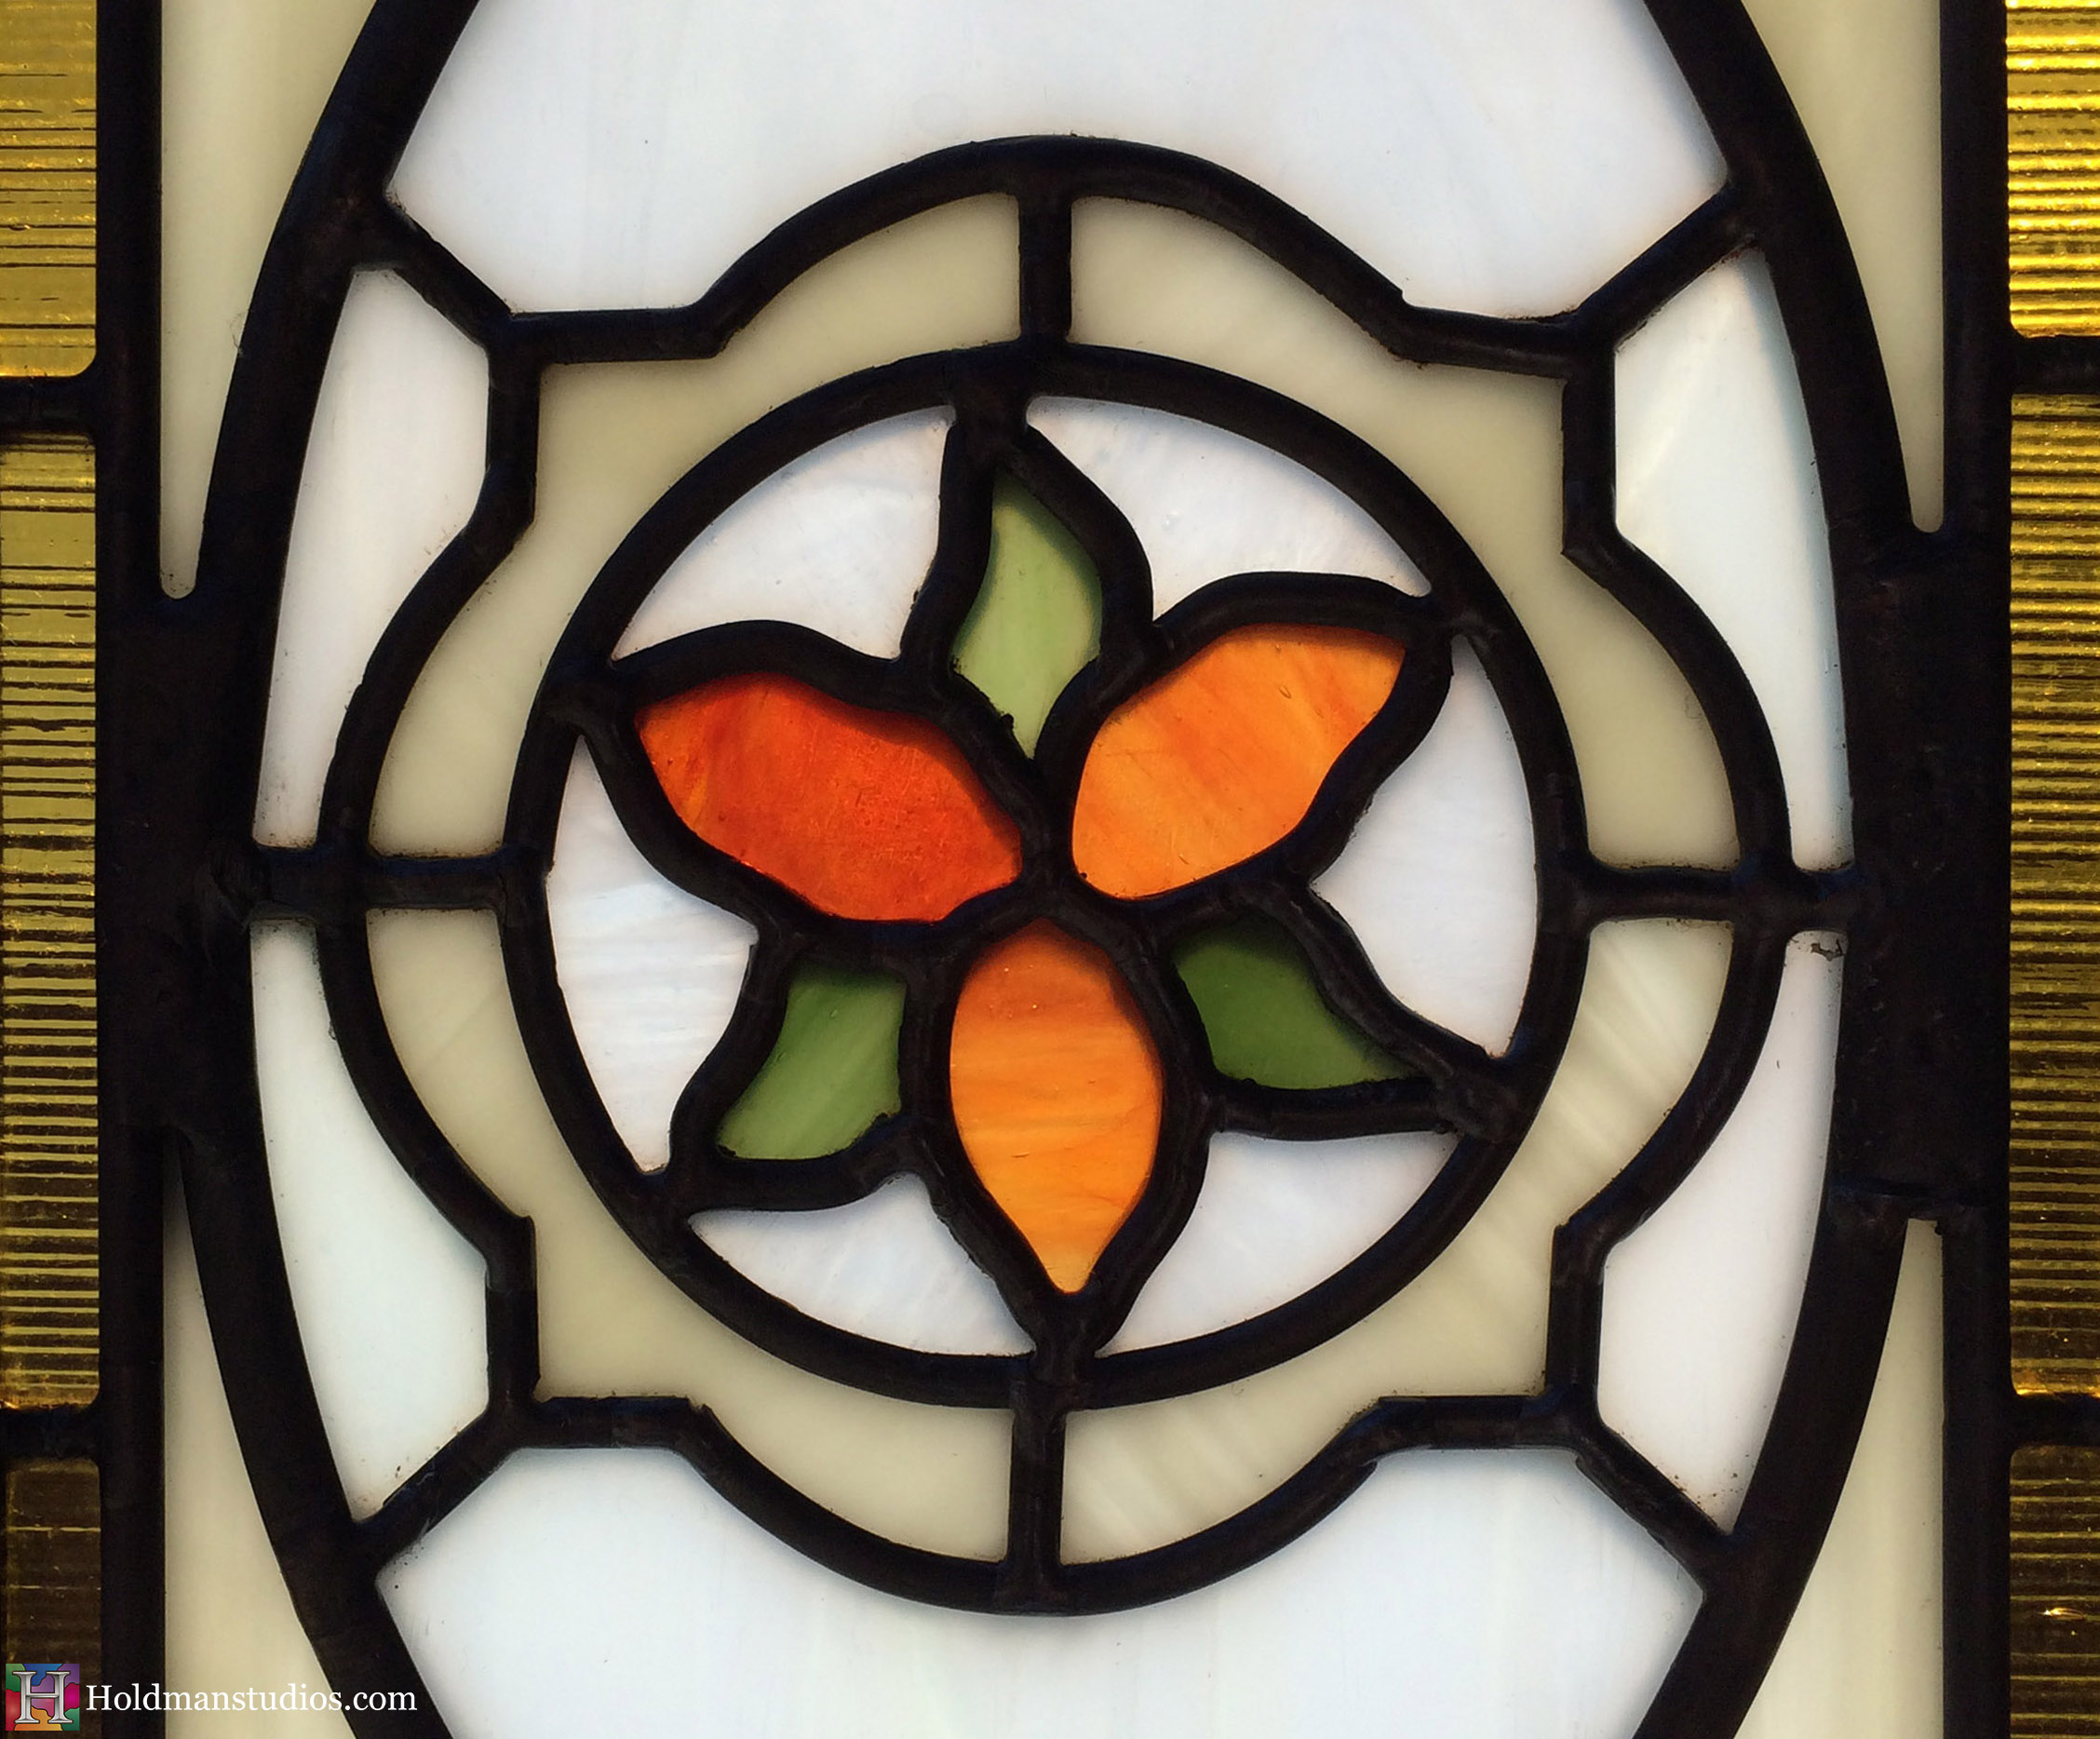 Holdman-Studios-Stained-Art-Glass-LDS-Mormon-Temple-Tijuana-Mexico-Orange-Bougainvillea-Bugambilia-Flower-Window-Crop2.jpg